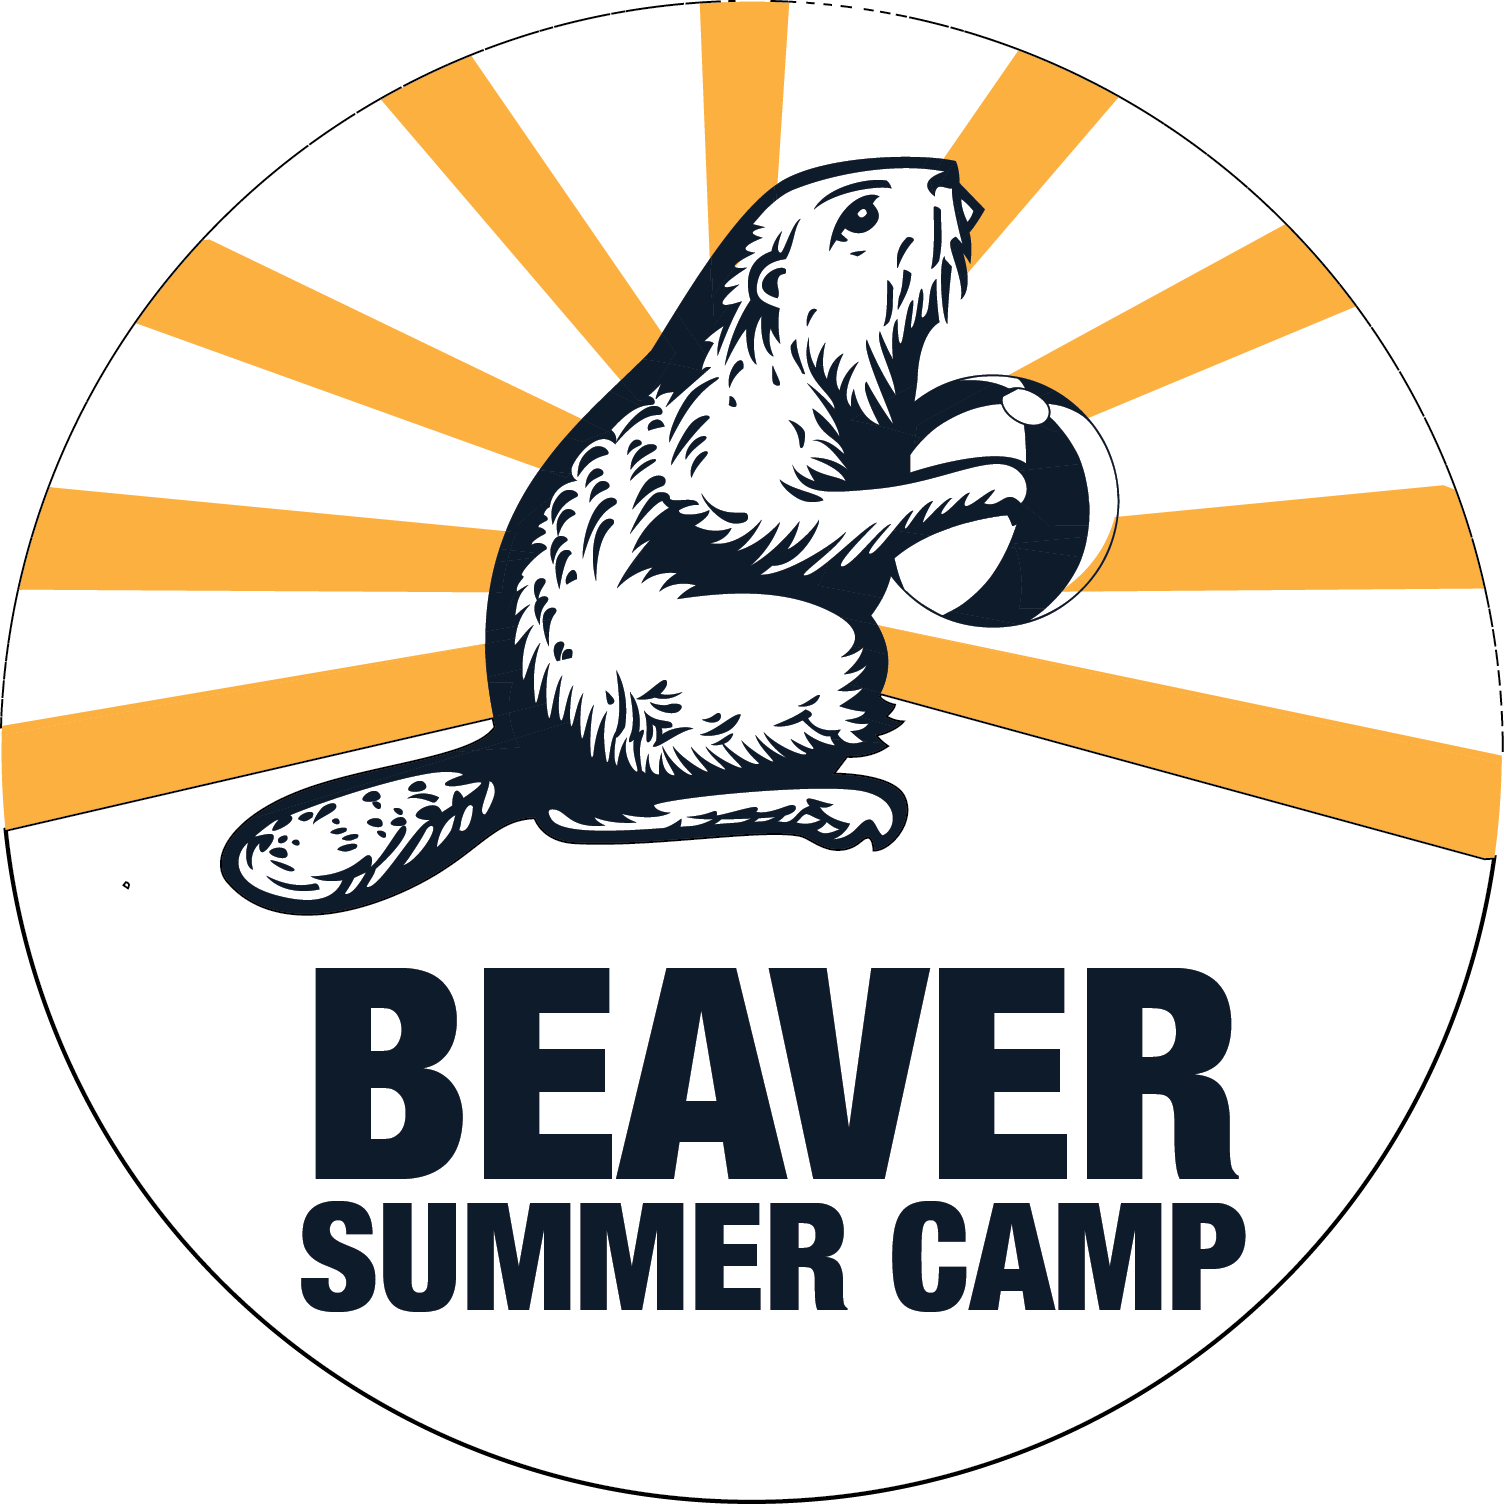 Beaver Summer Camp: Counselor in Training